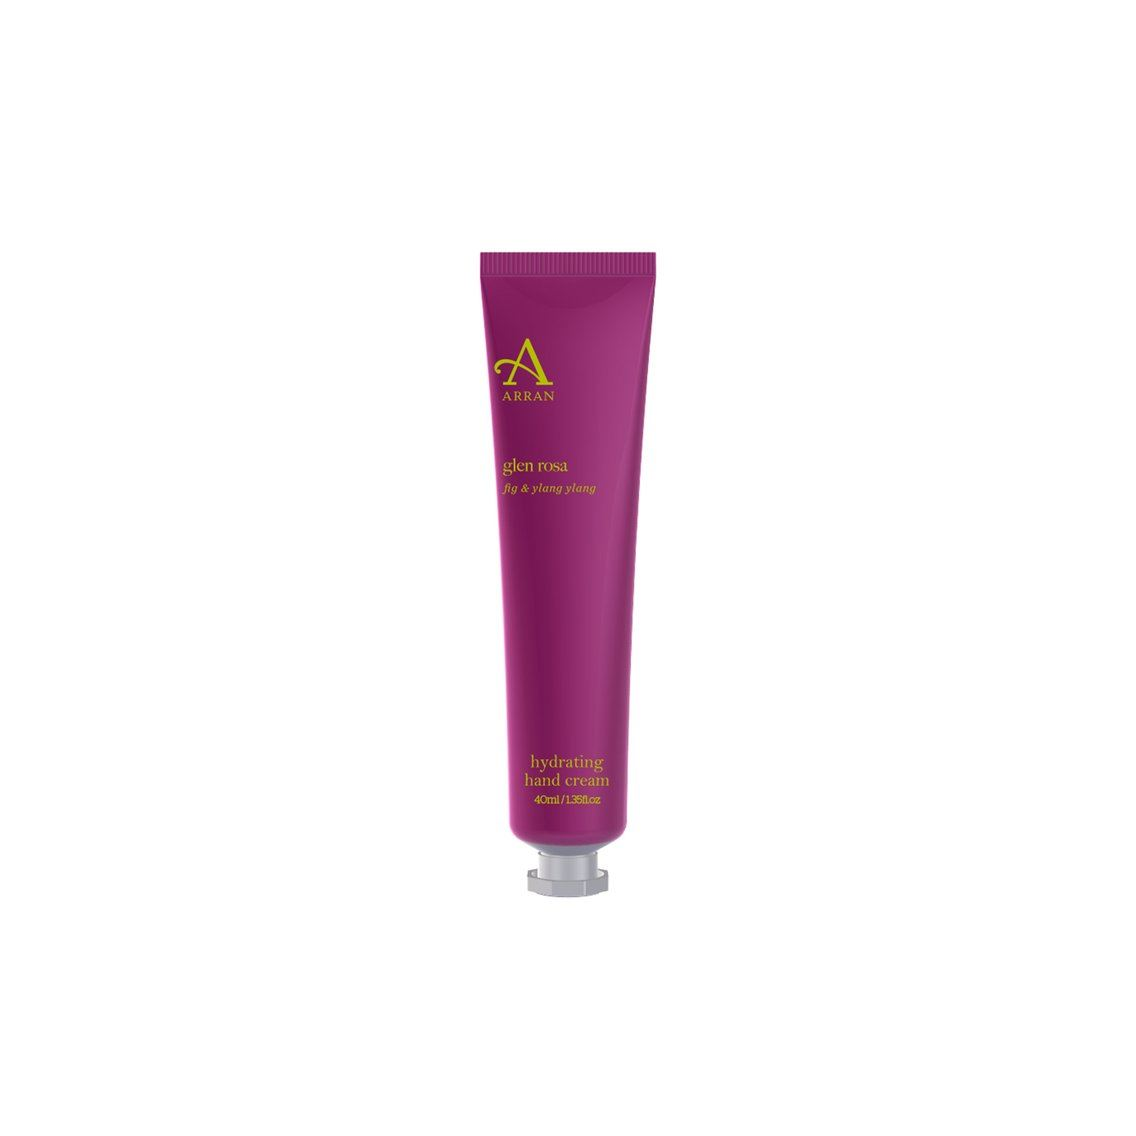 FREE Arran Glen Rosa Hydrating hand cream 40ml